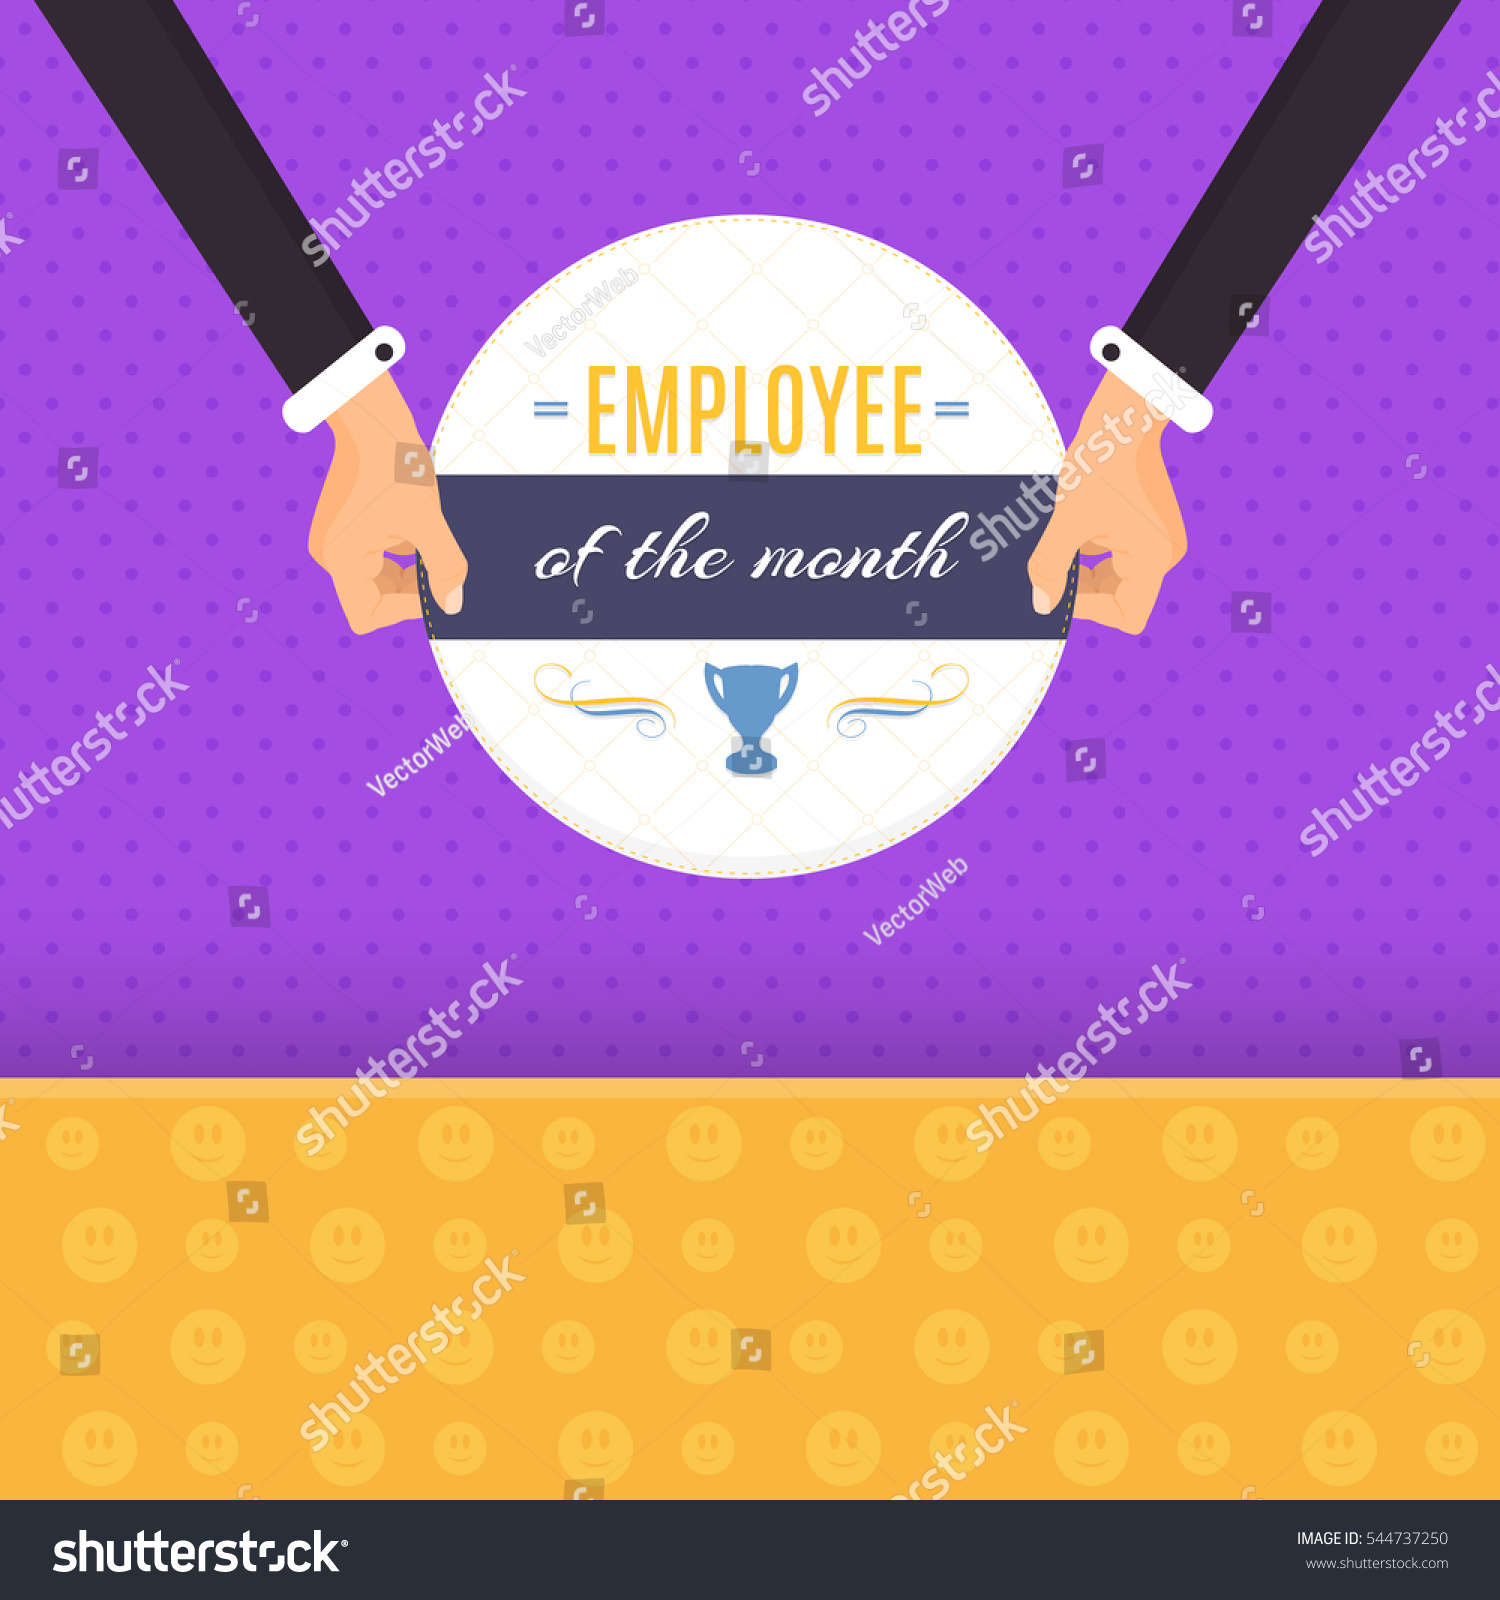 Employee Of The Month Quotes Colorful Illustration Business Slogans Motivation Quote Stock